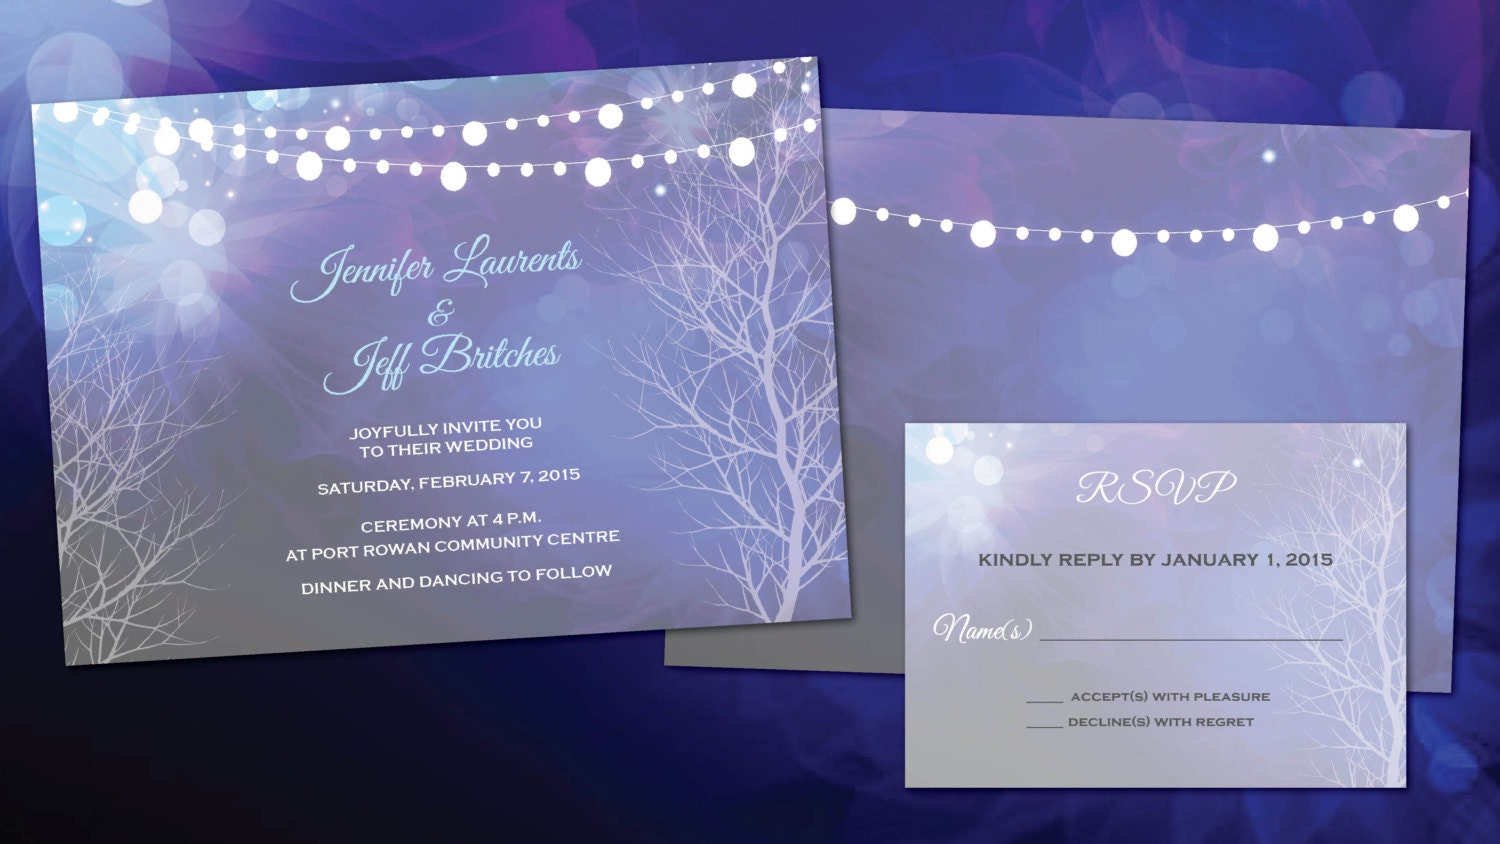 Evening Wedding Reception Invitations: Purple & Crystal Blue Wedding Invitations Evening Weddings